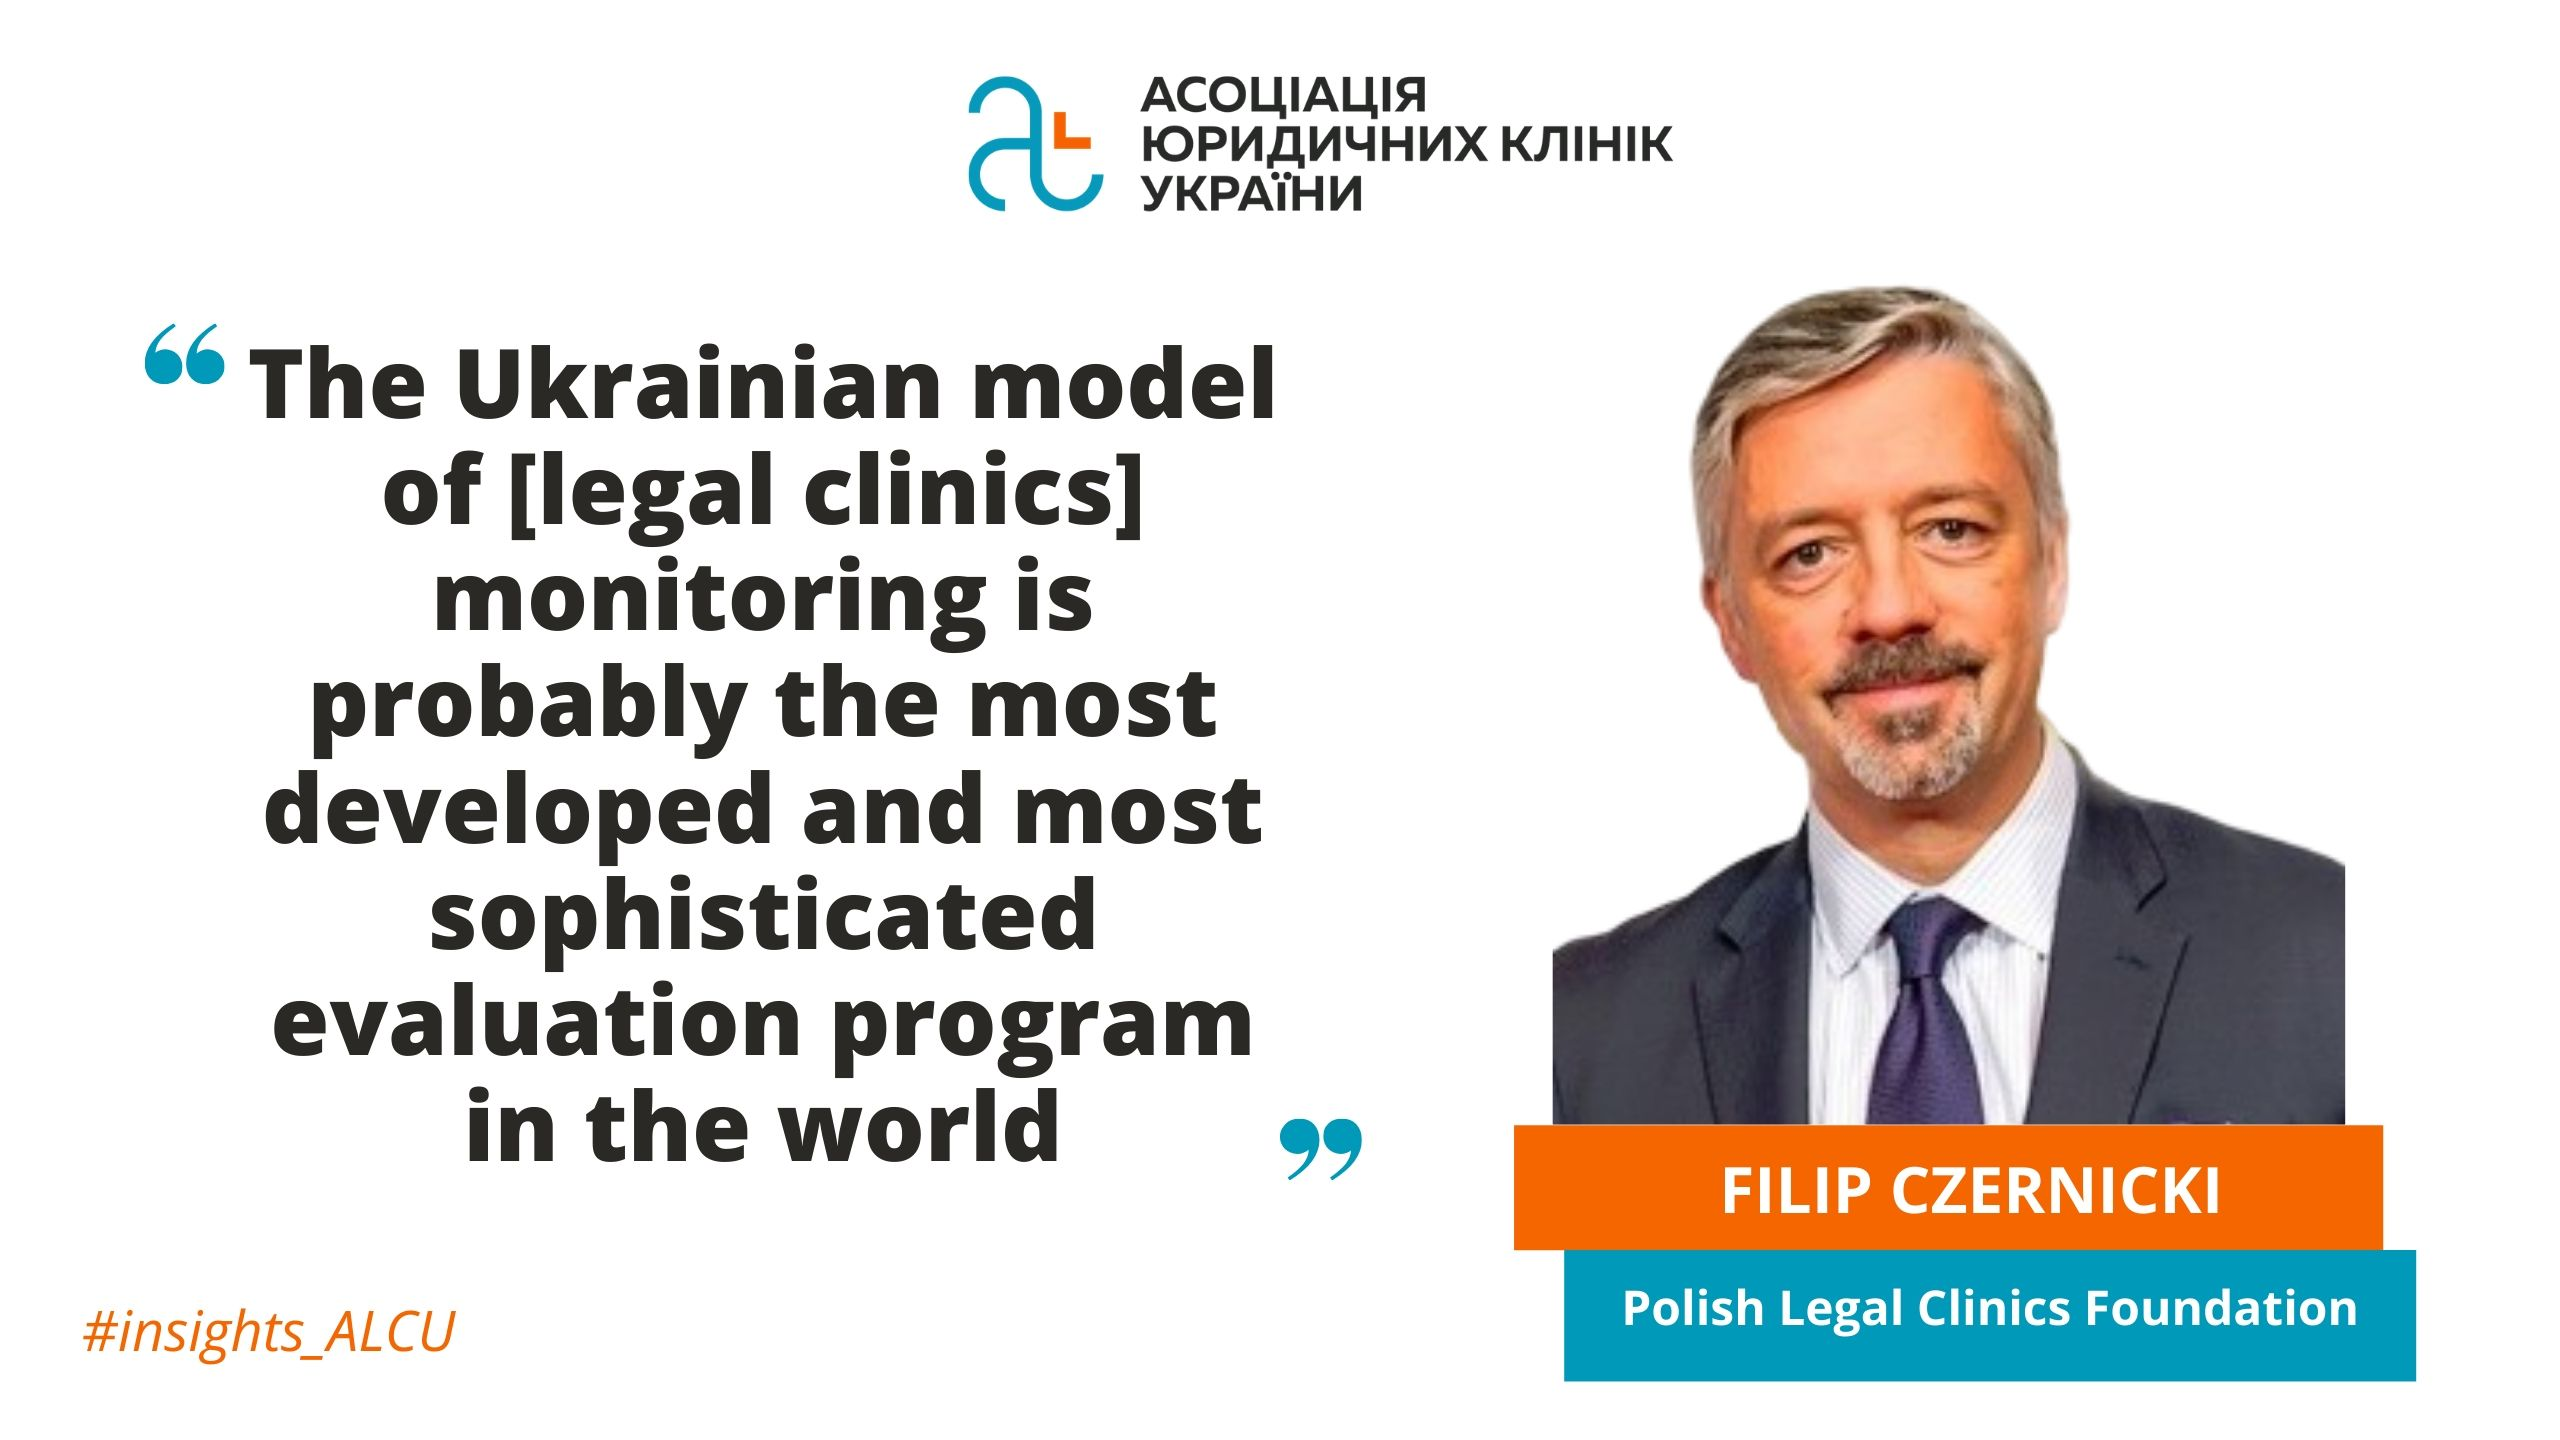 A Sketch on Common Values of Legal Clinical Potential Empowerment in Ukraine and Poland